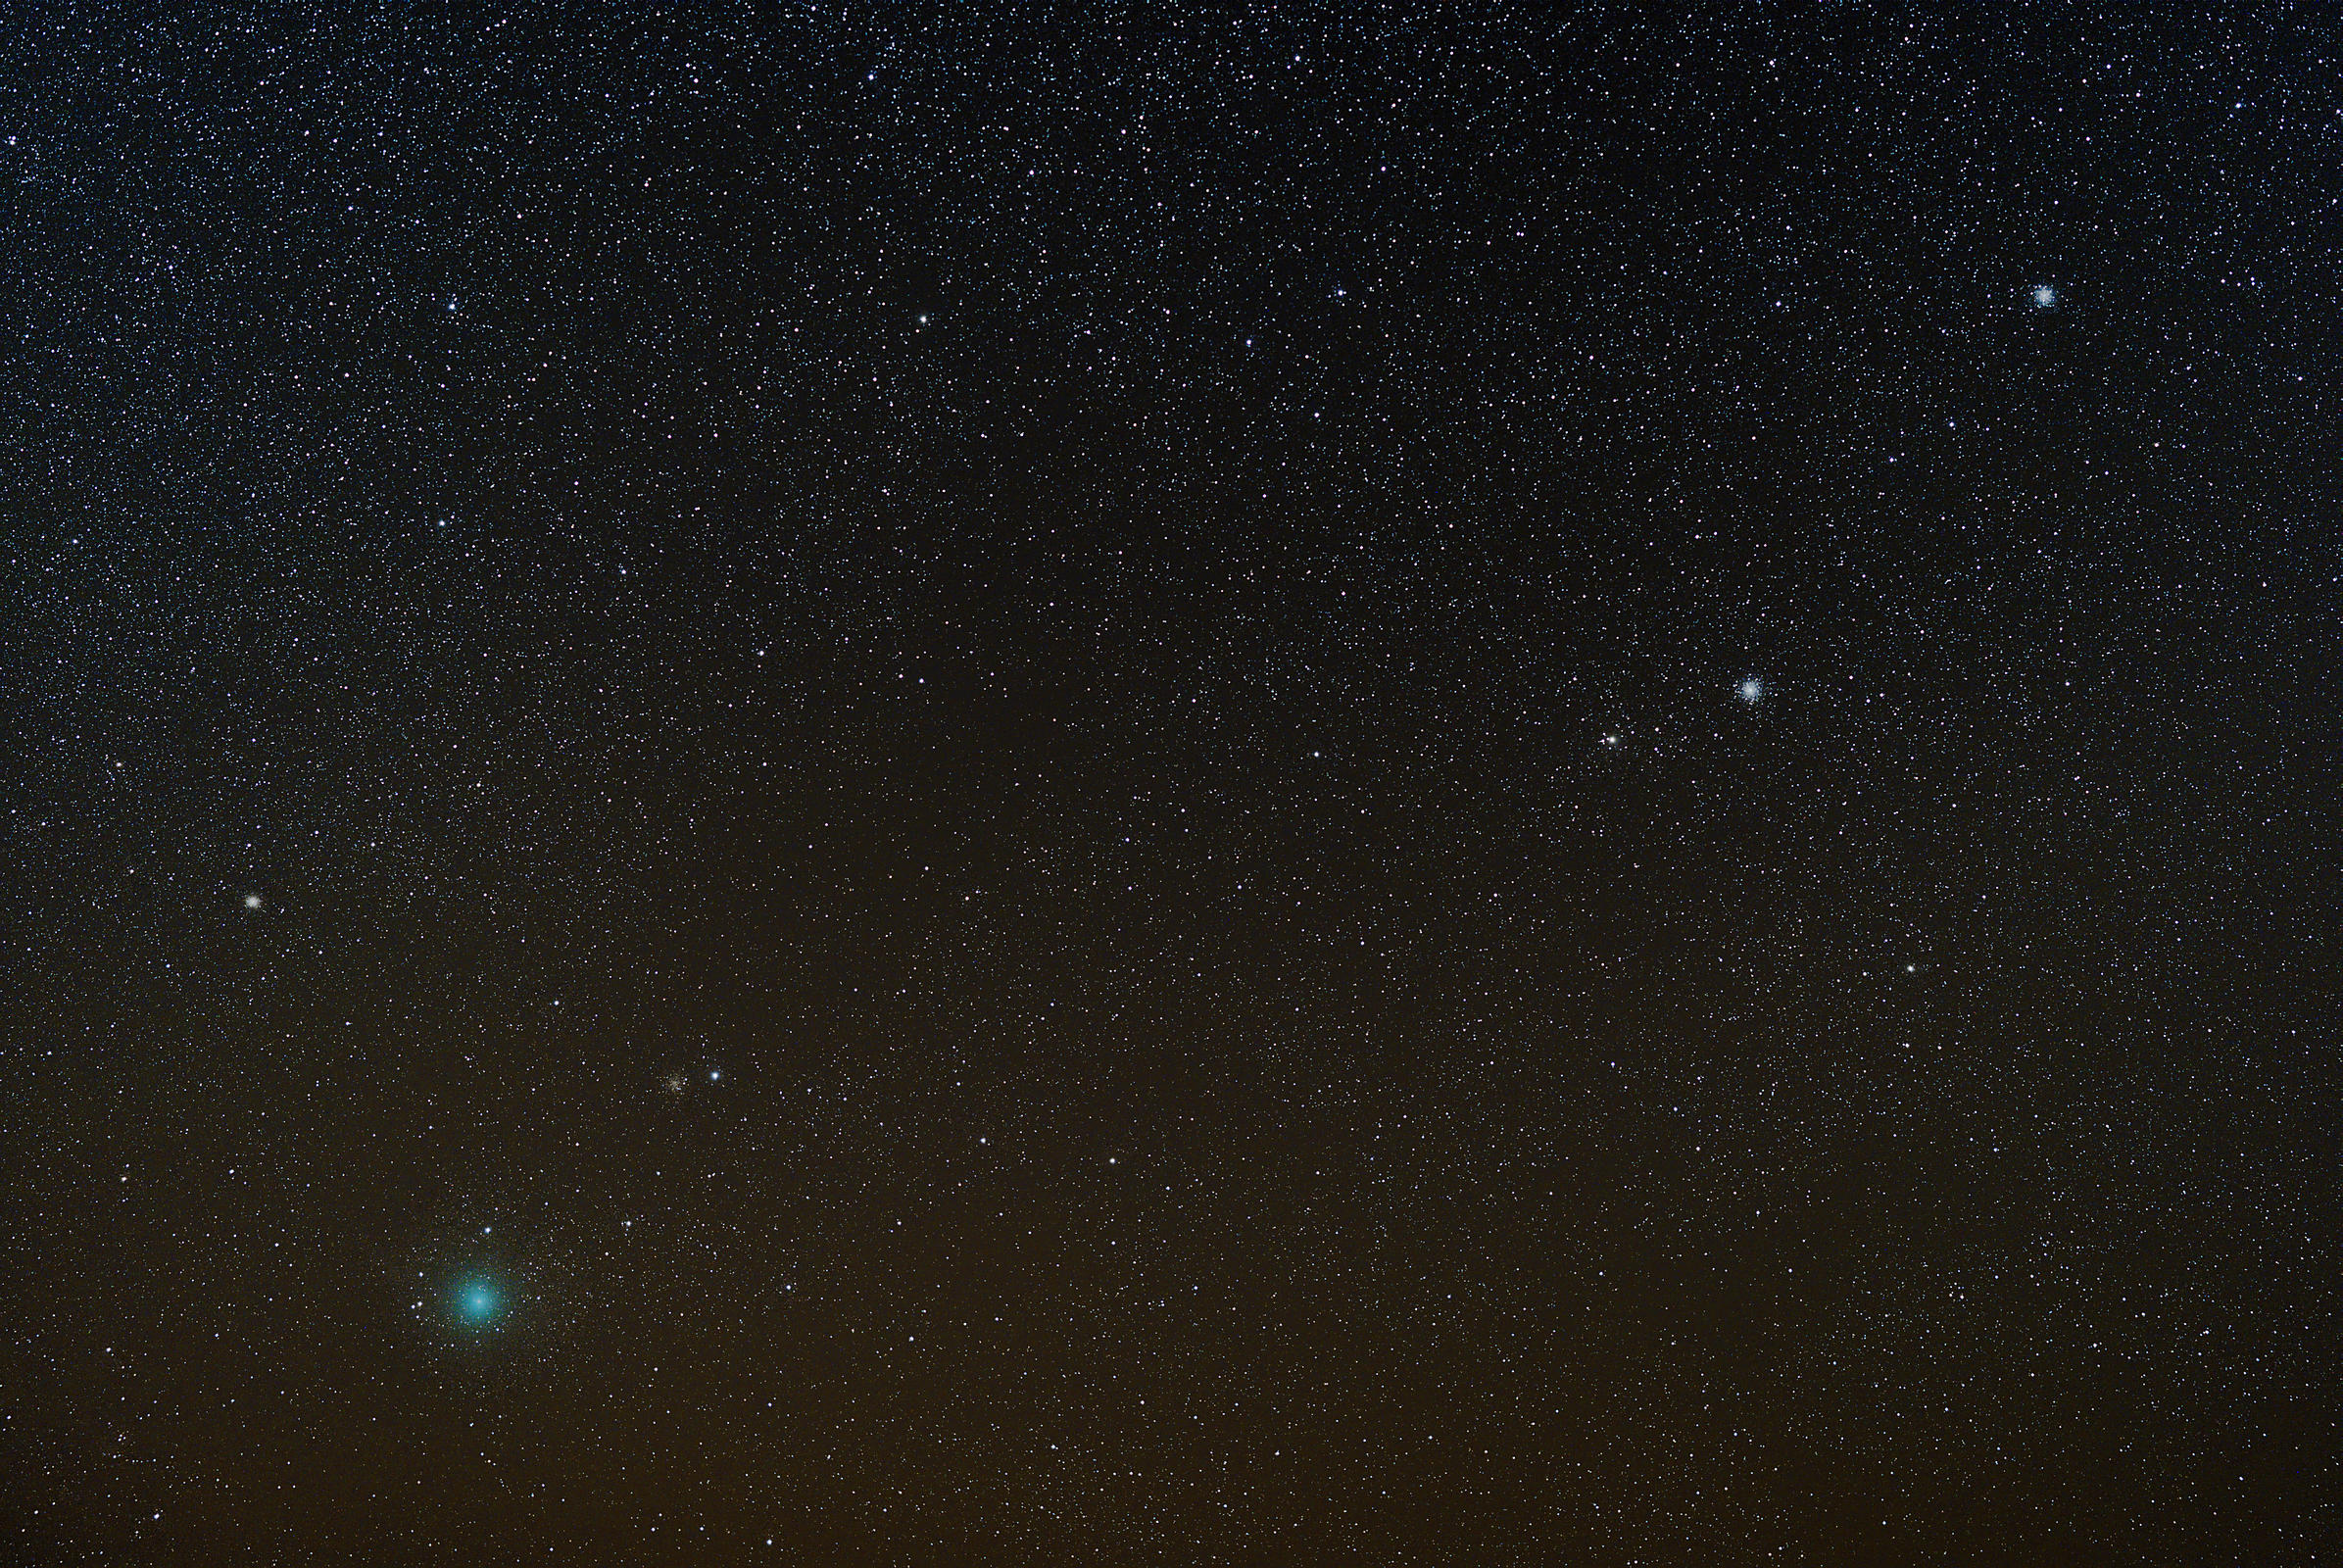 Comet 252/P and Globular Clusters M 10, M 12, M 14 and NGC 6366 photographed in Southern Finland on April 4 2016.